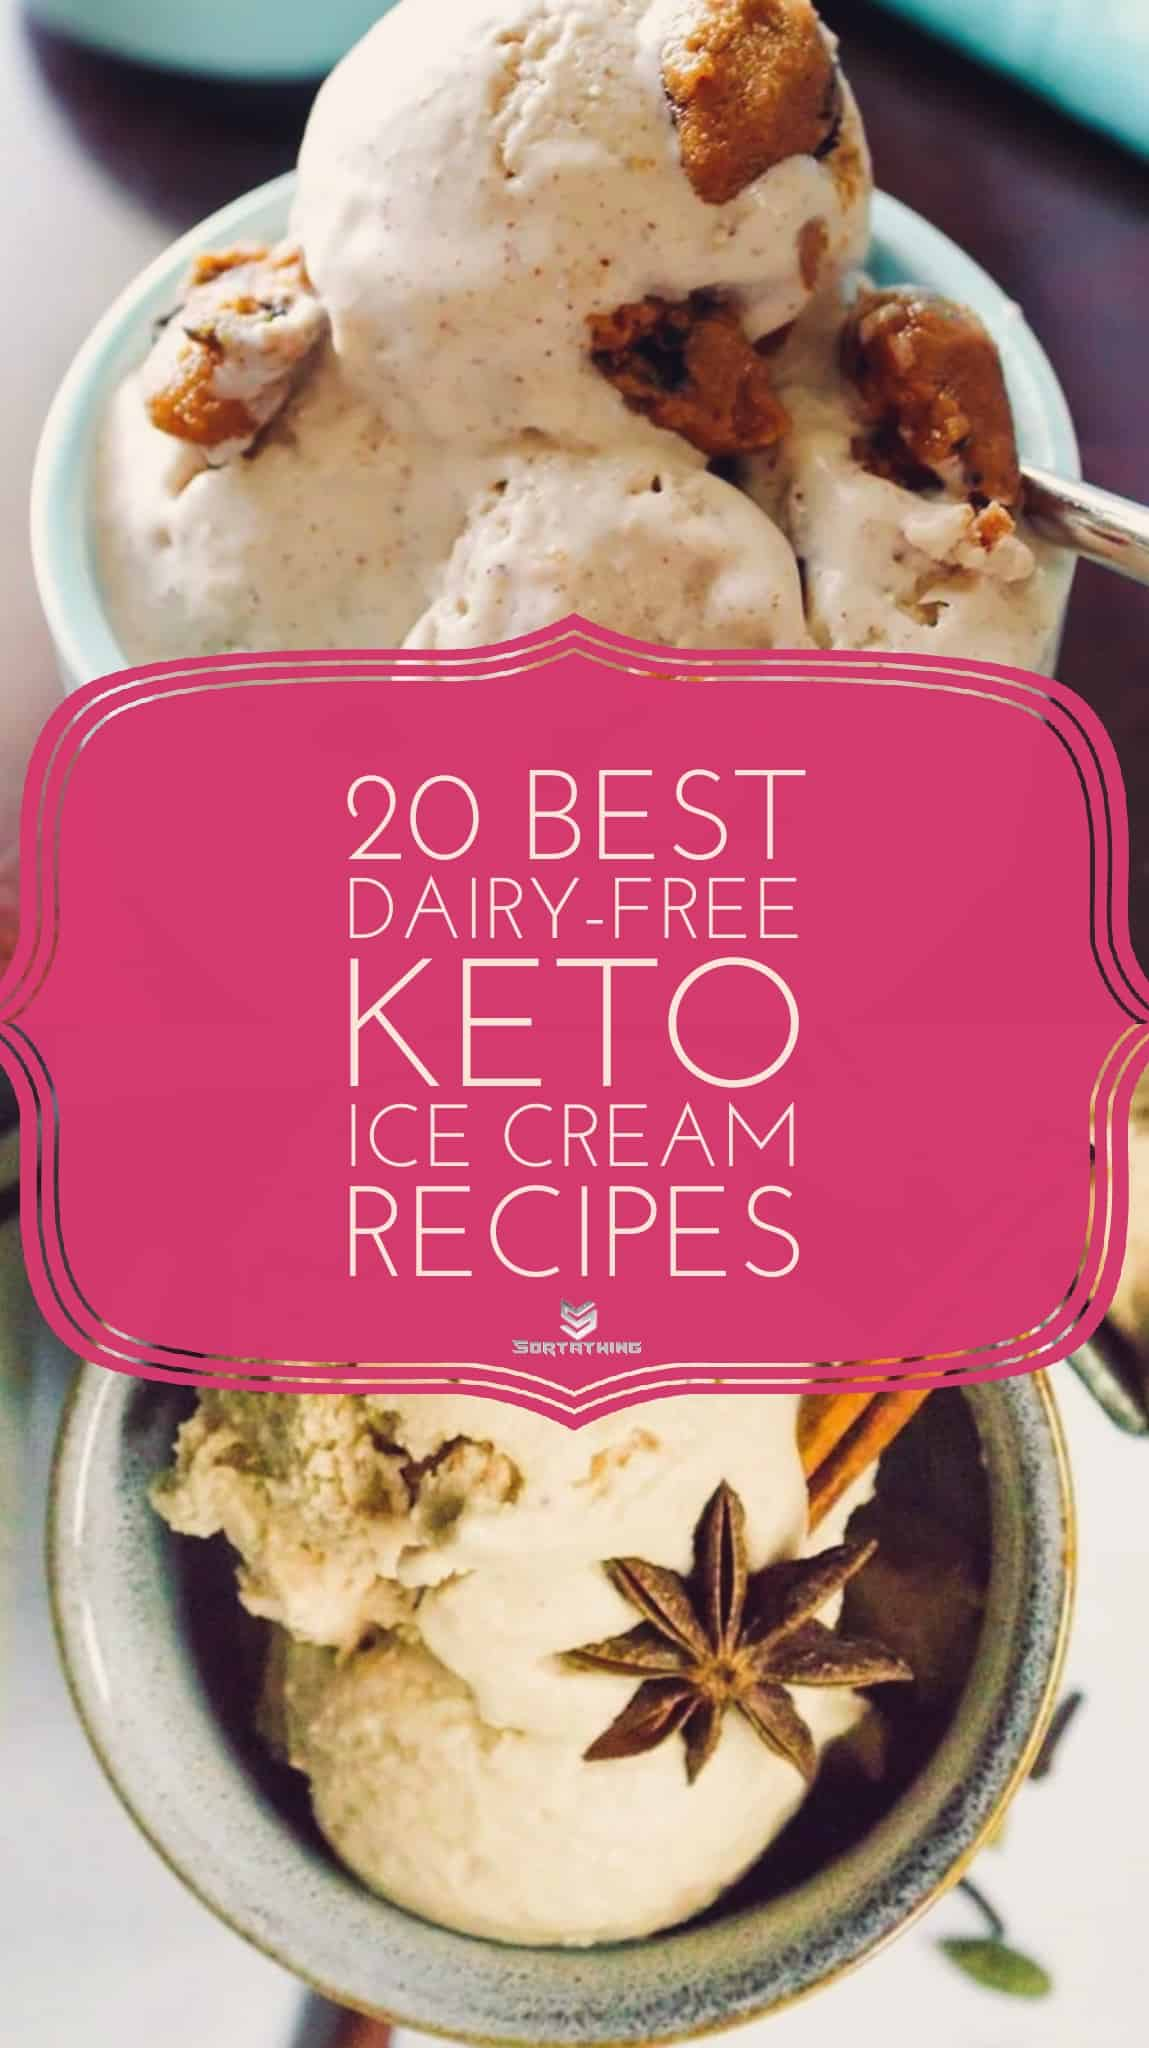 Low-Carb Keto Cookie Dough Ice Cream and Keto Chai Ice Cream